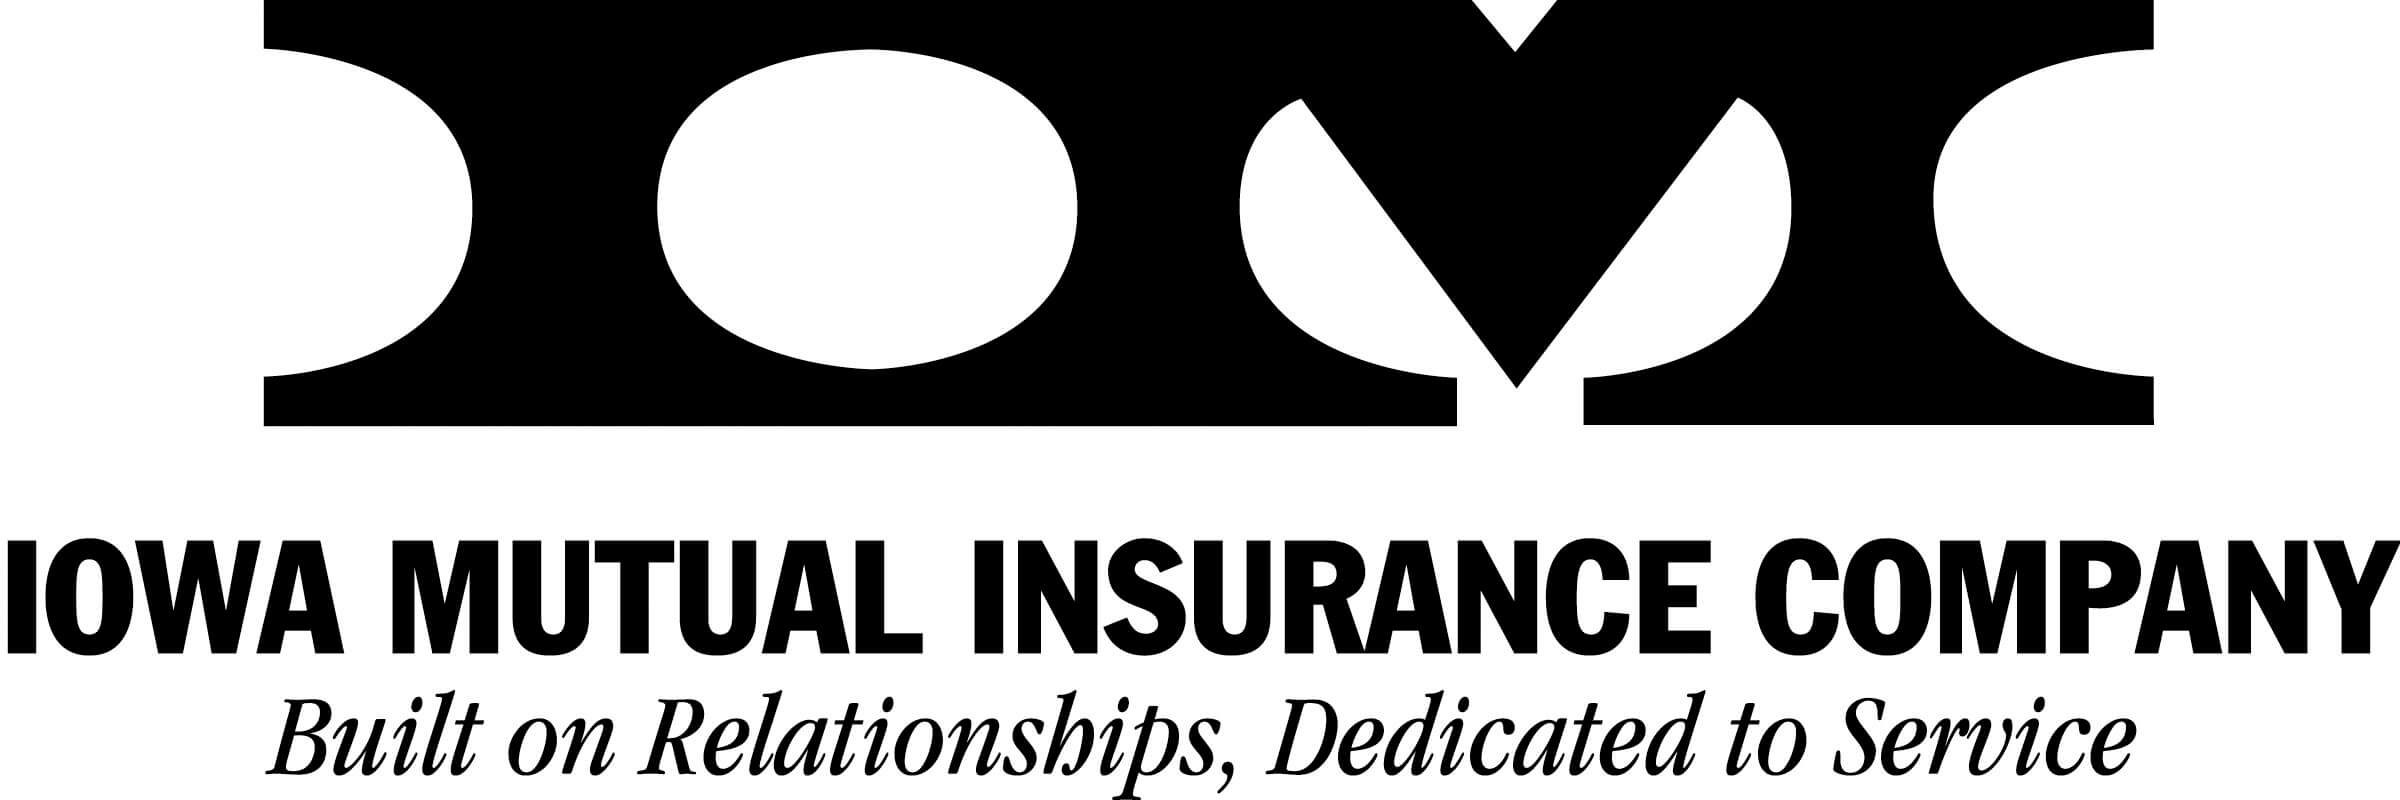 Iowa Mutual Insurance Company